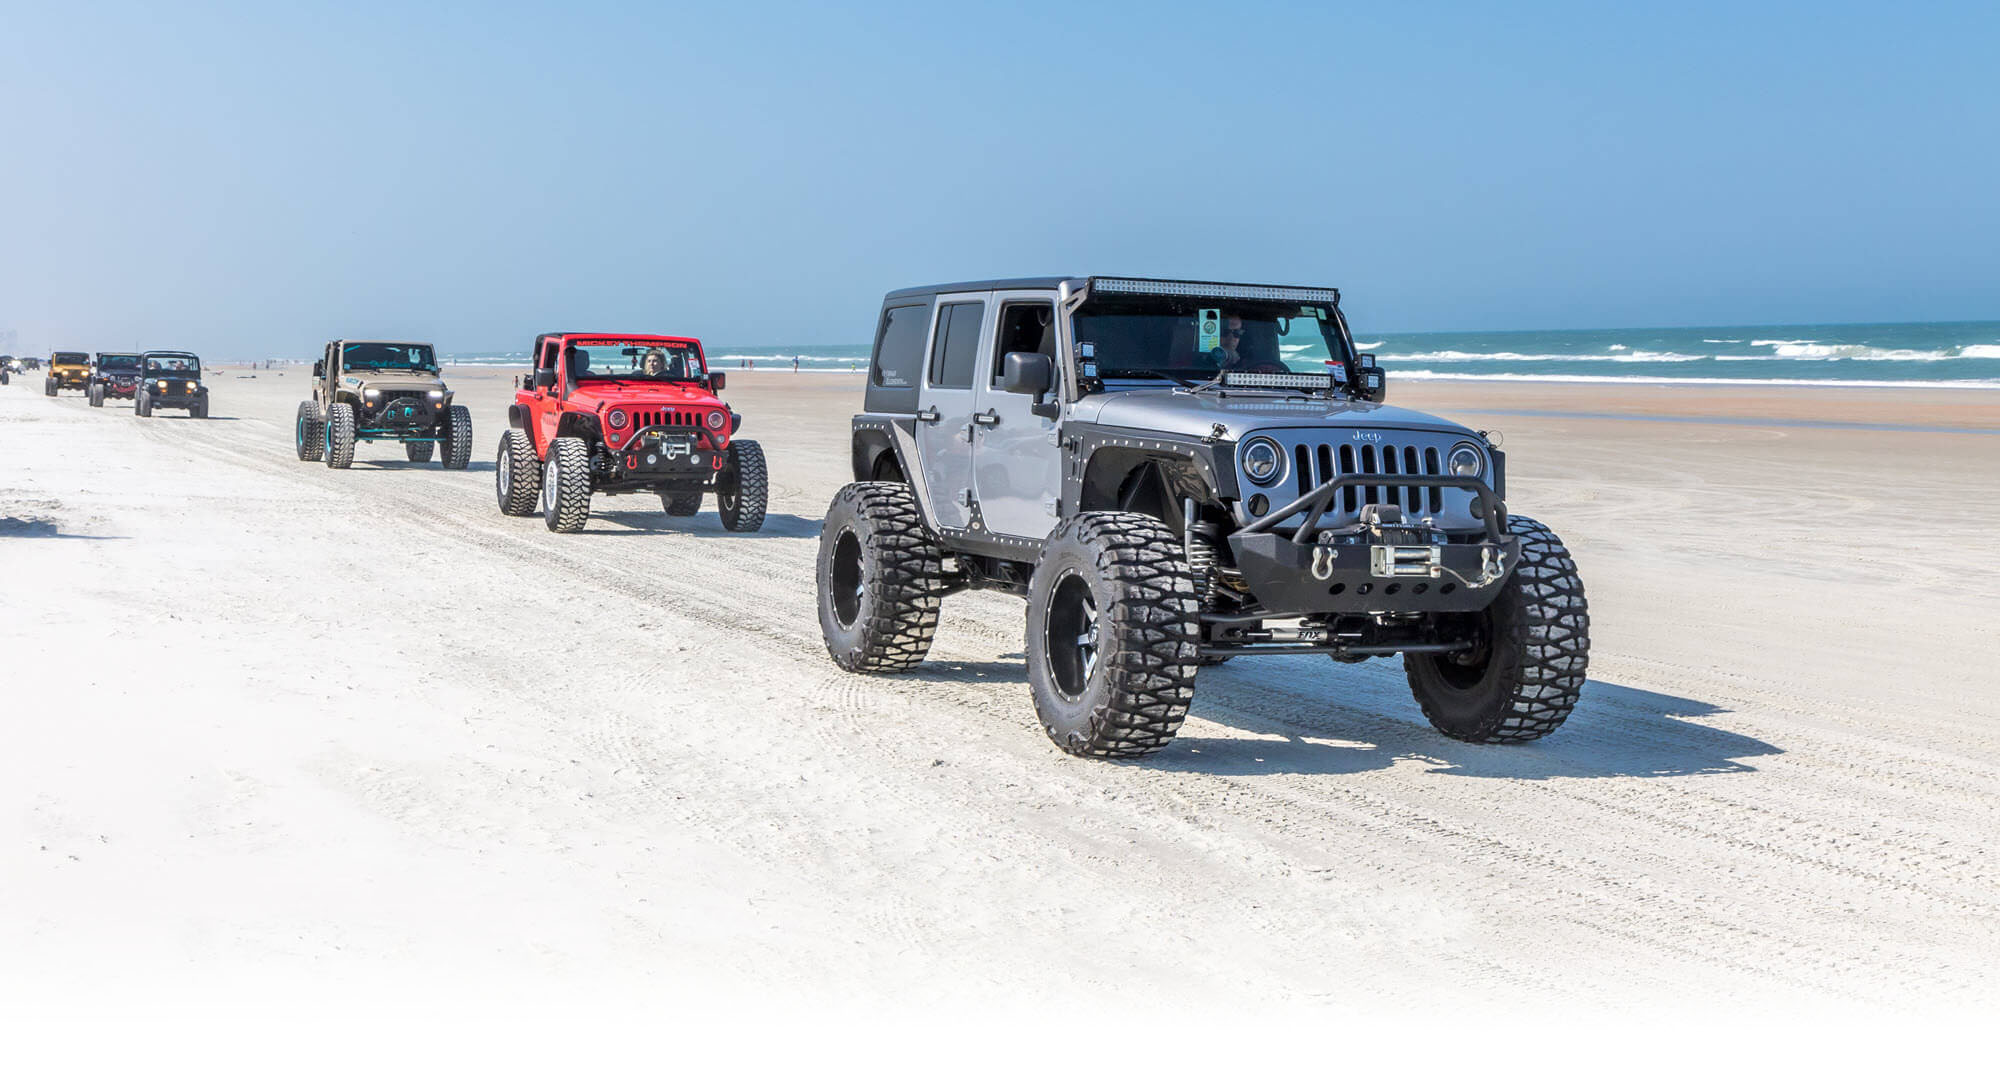 Jeep Beach Daytona 2017 >> Jeep Beach | The largest Jeep Only event in the Southeast USA